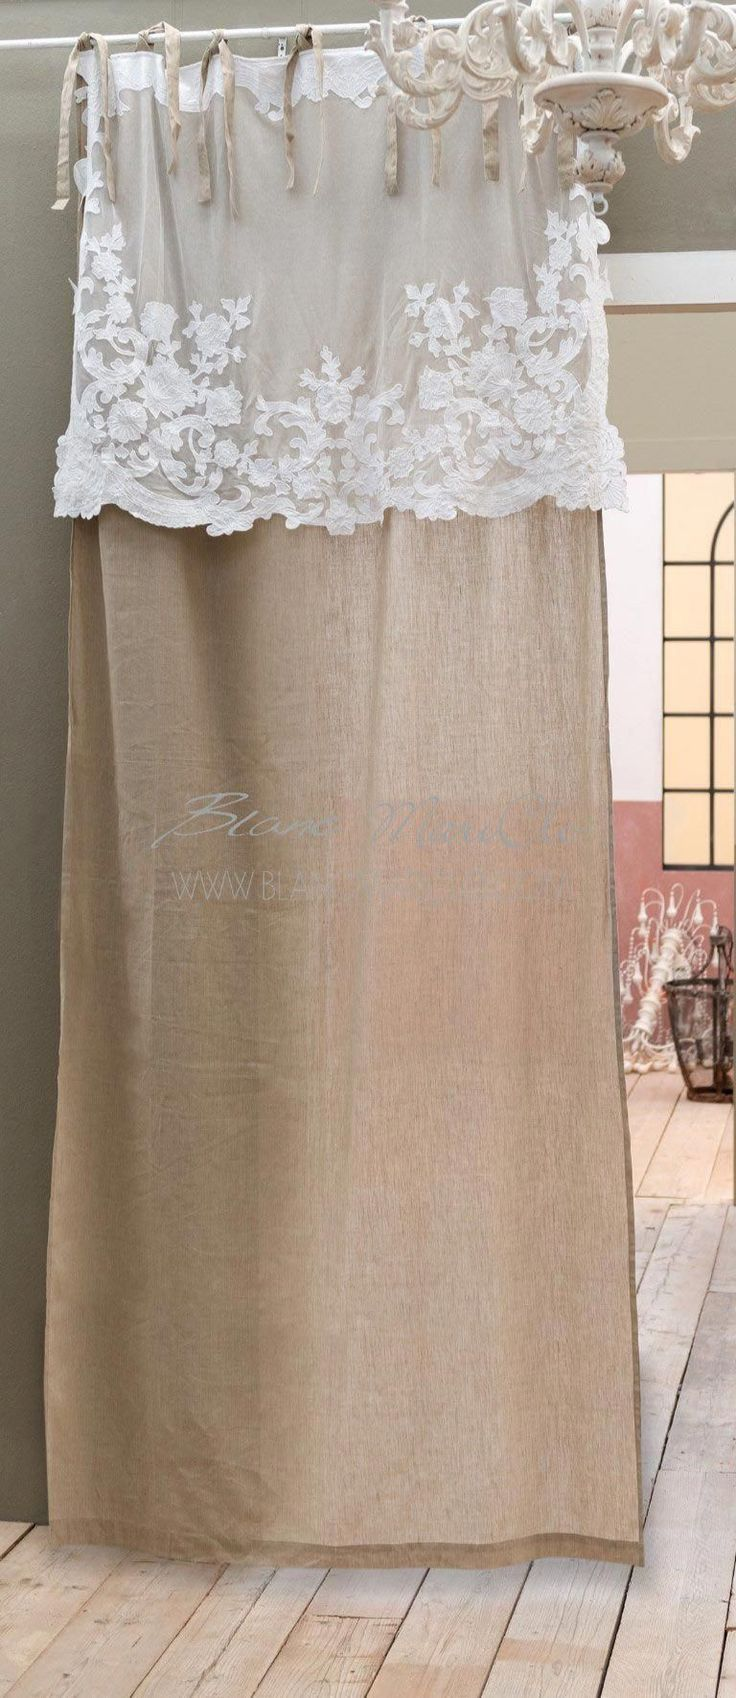 "Shabby Chic Curtain with ""Arabella Collection"" Blanc Mariclò Bubble. Material: 55% linen 45% cotton Dimensions: 140×290 cm Exclusive selection Blanc MariClò. #Shabbychicbathrooms"